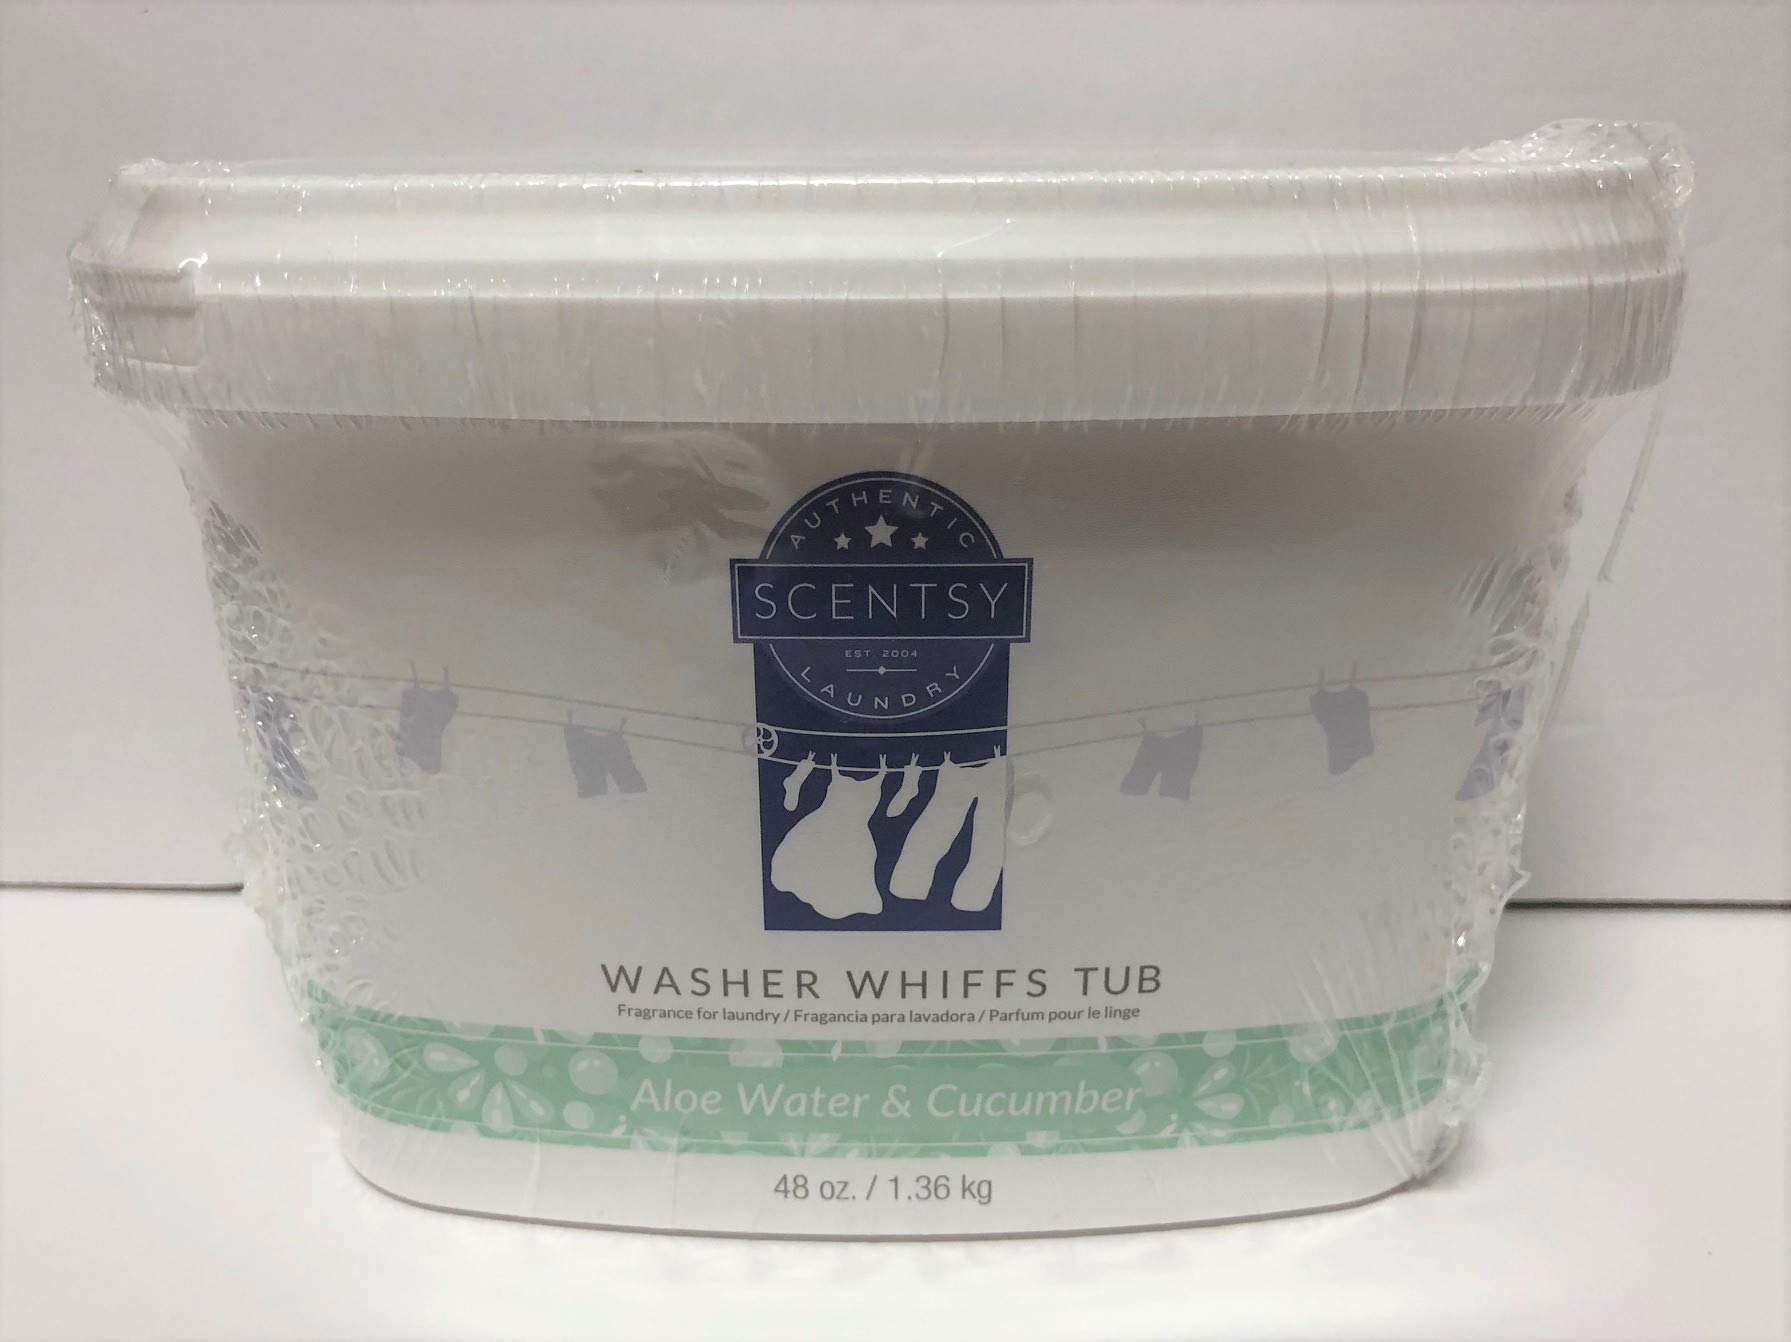 Layers by Scentsy Washer Whiffs (Aloe Water) 48 oz Tub